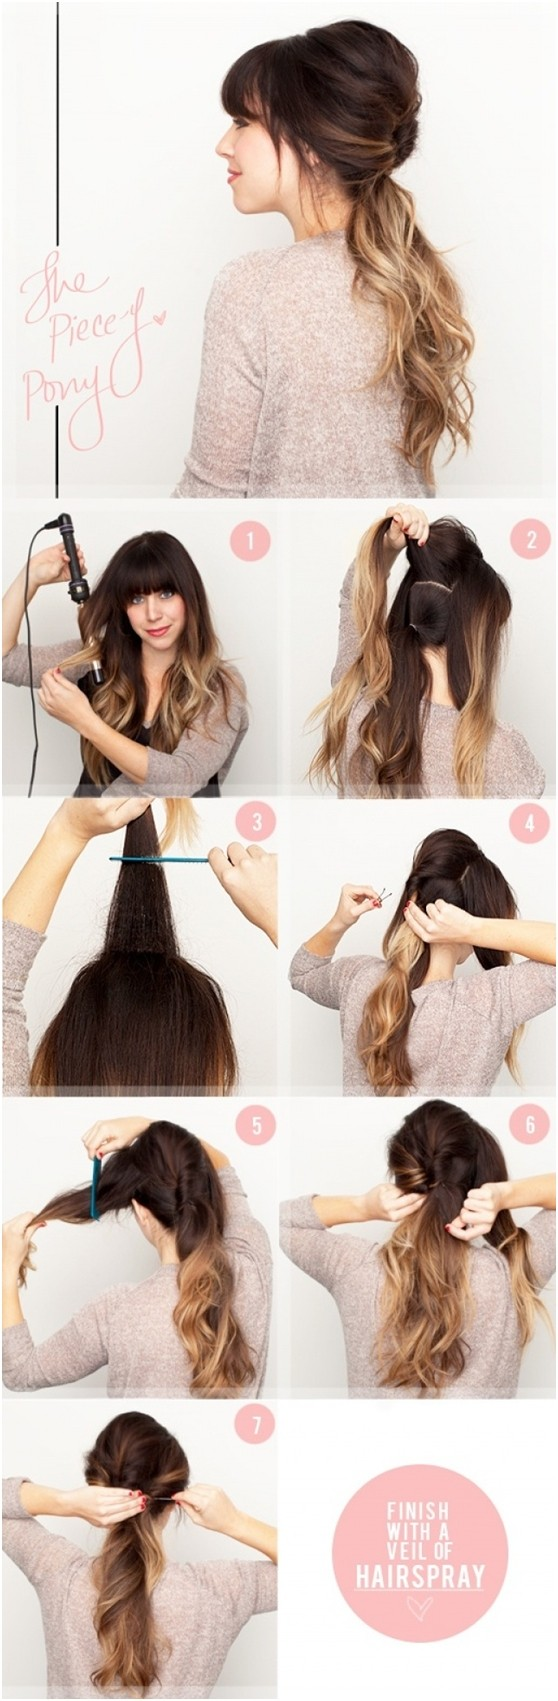 Simple ponytail hairstyle for ombre hair